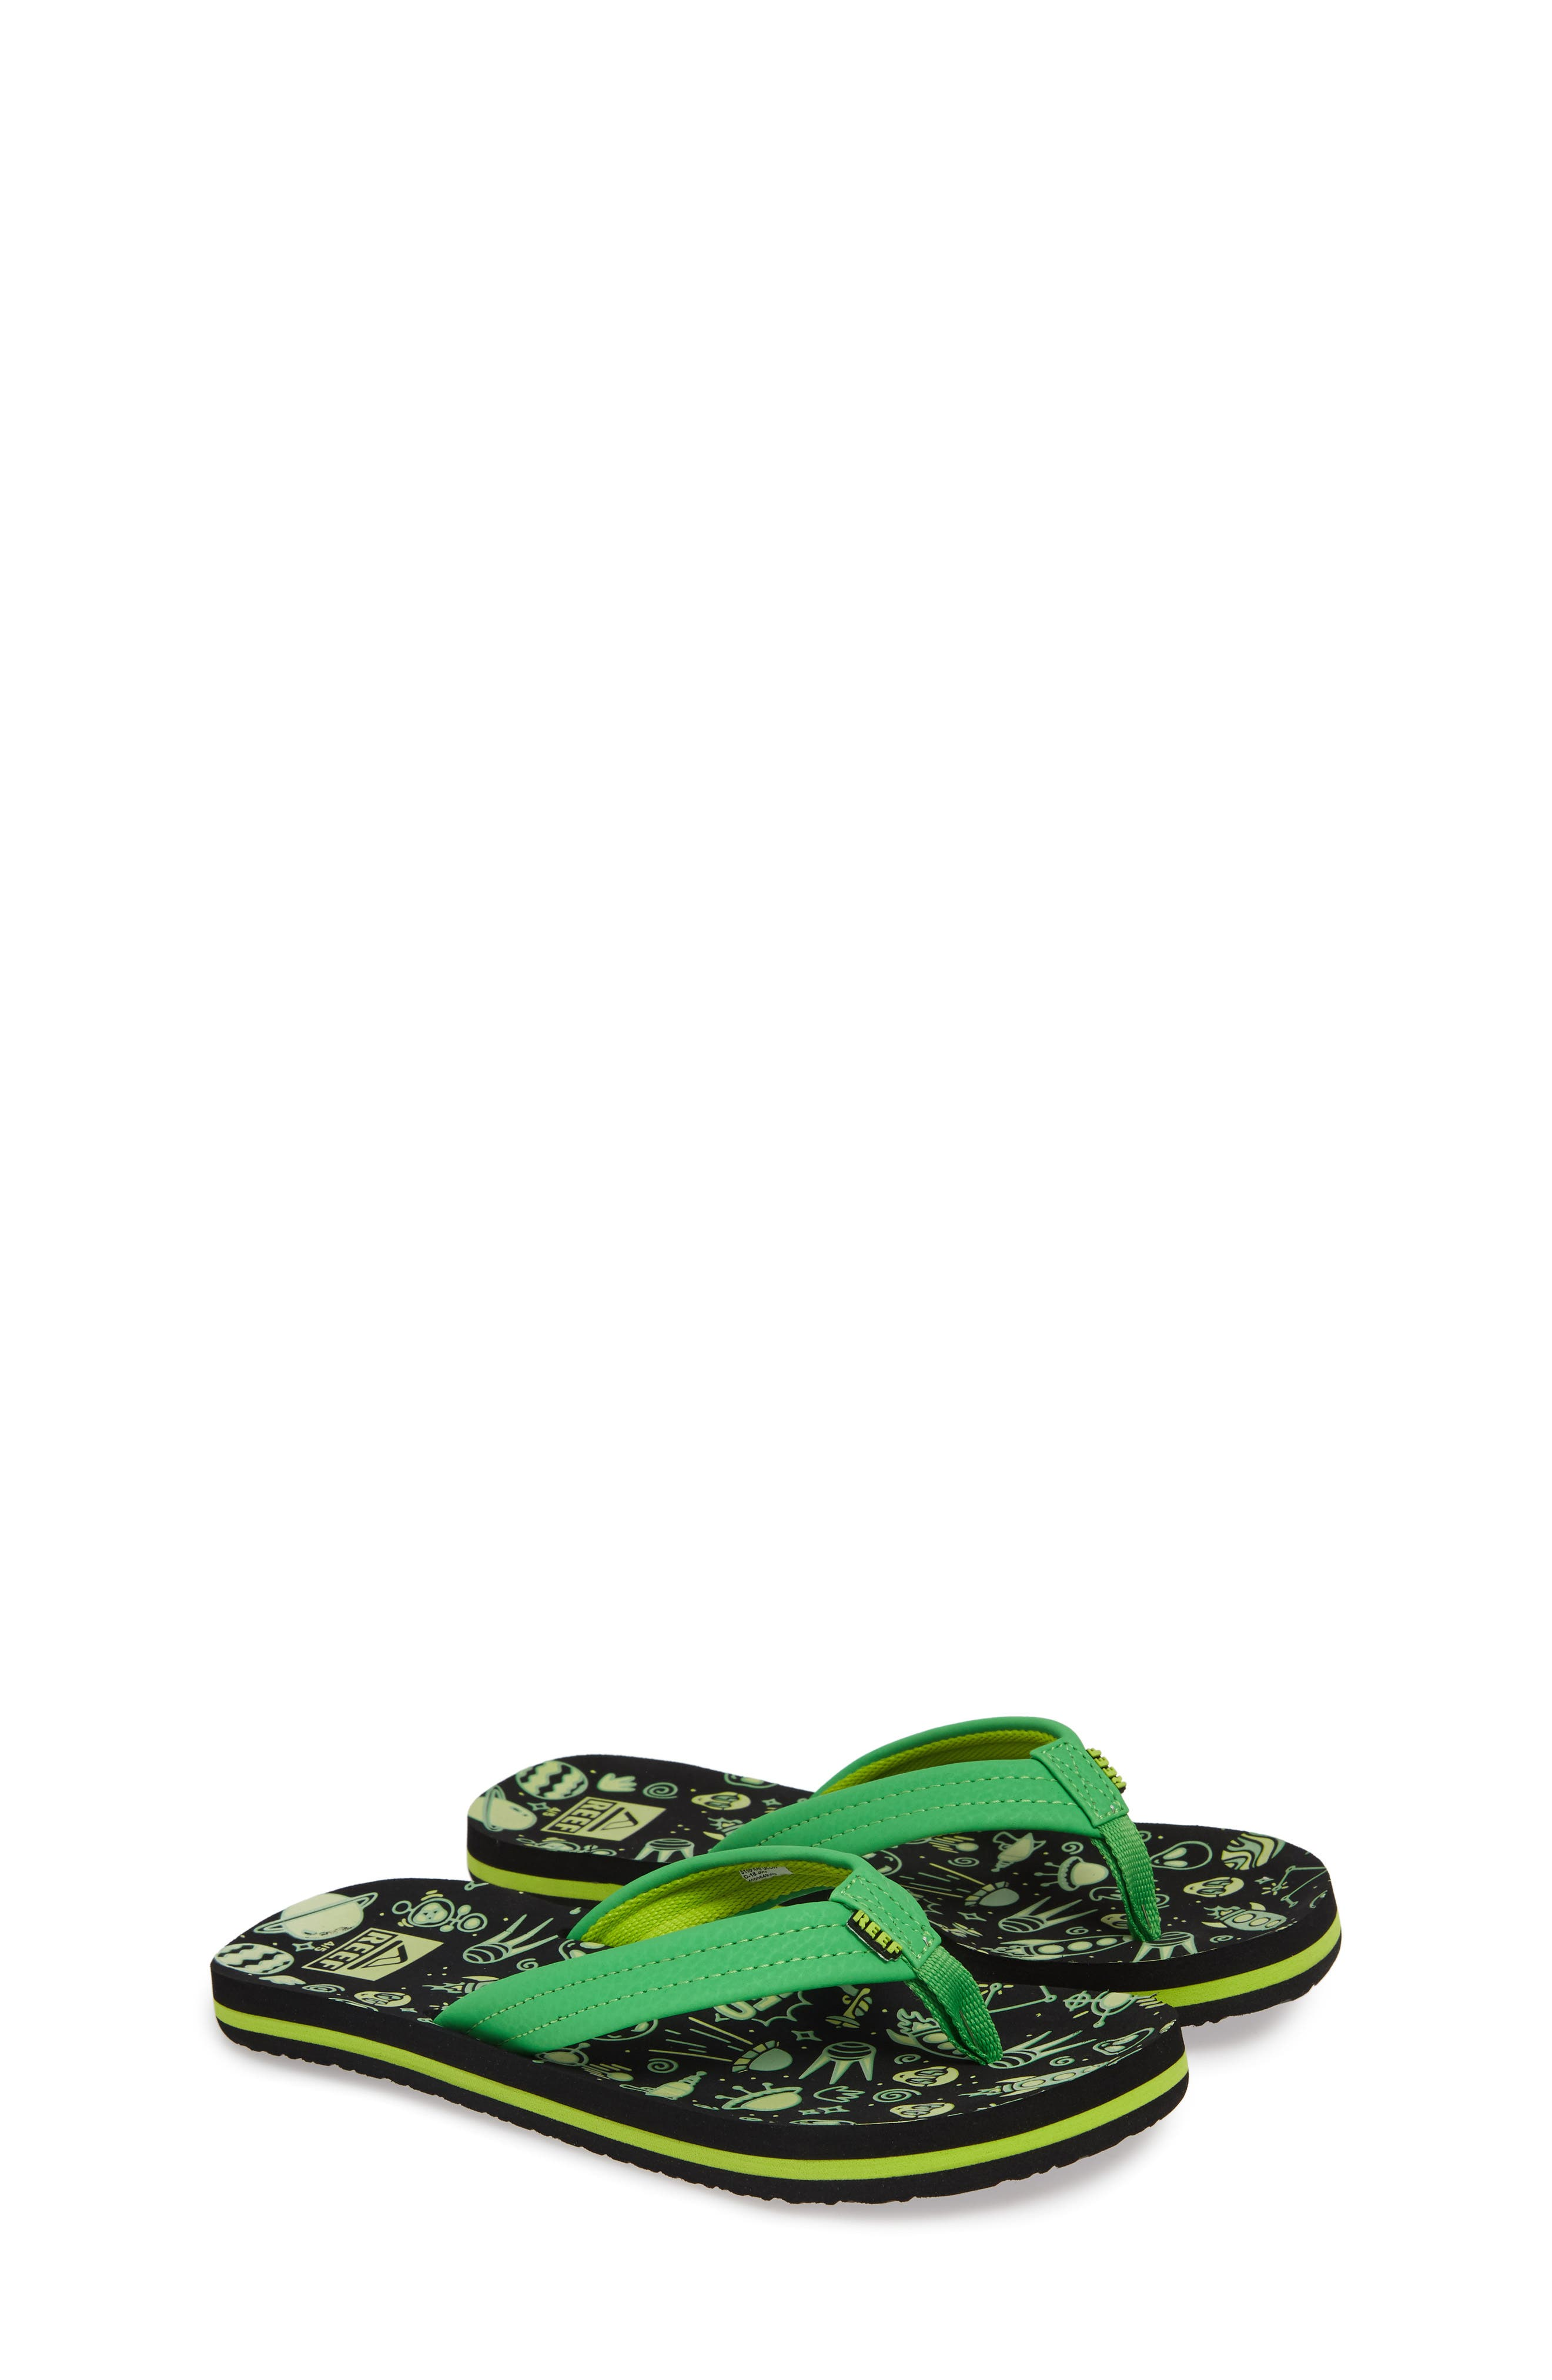 Ahi Glow in the Dark Flip Flop,                             Alternate thumbnail 2, color,                             GREEN